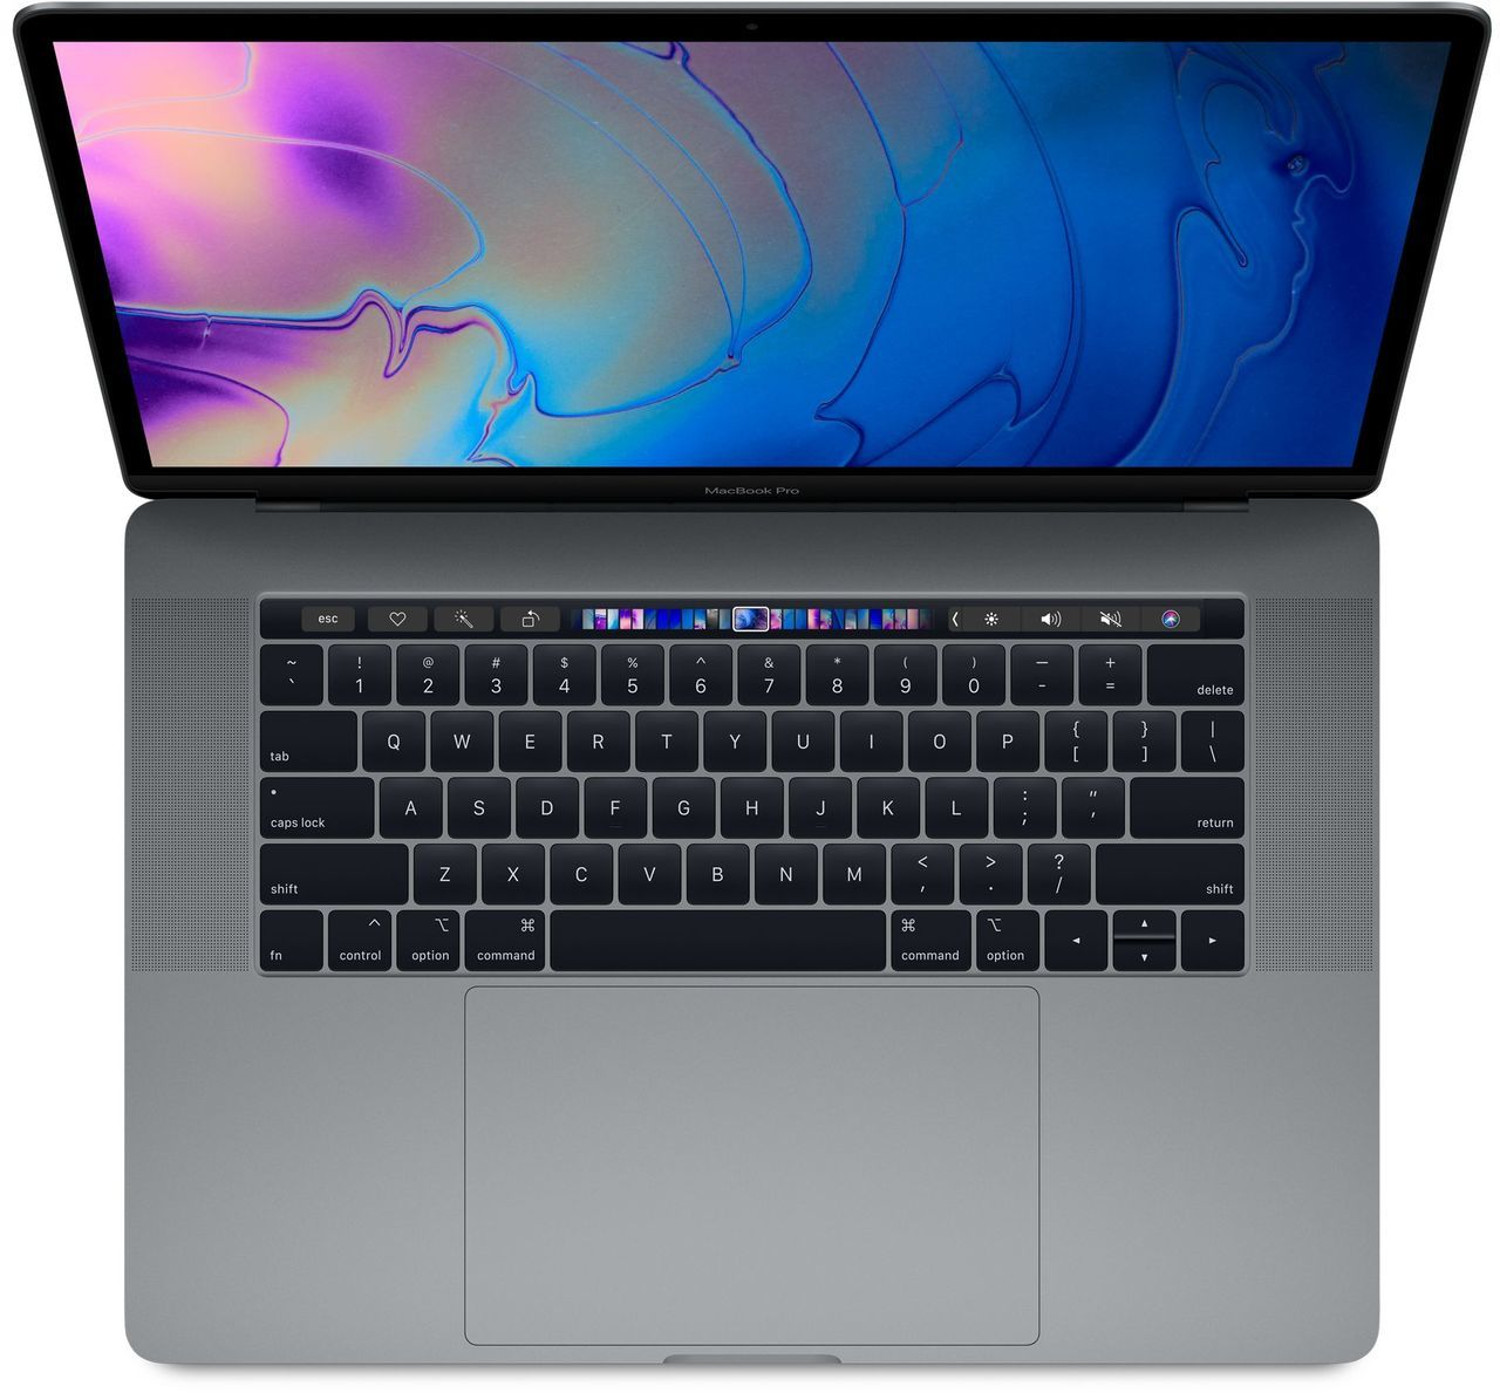 15-inch MacBook Pro with Touch Bar: 2.2GHz 6-core 8th-generation IntelCorei7 processor, 256GB - Silver(MR962SA/A)